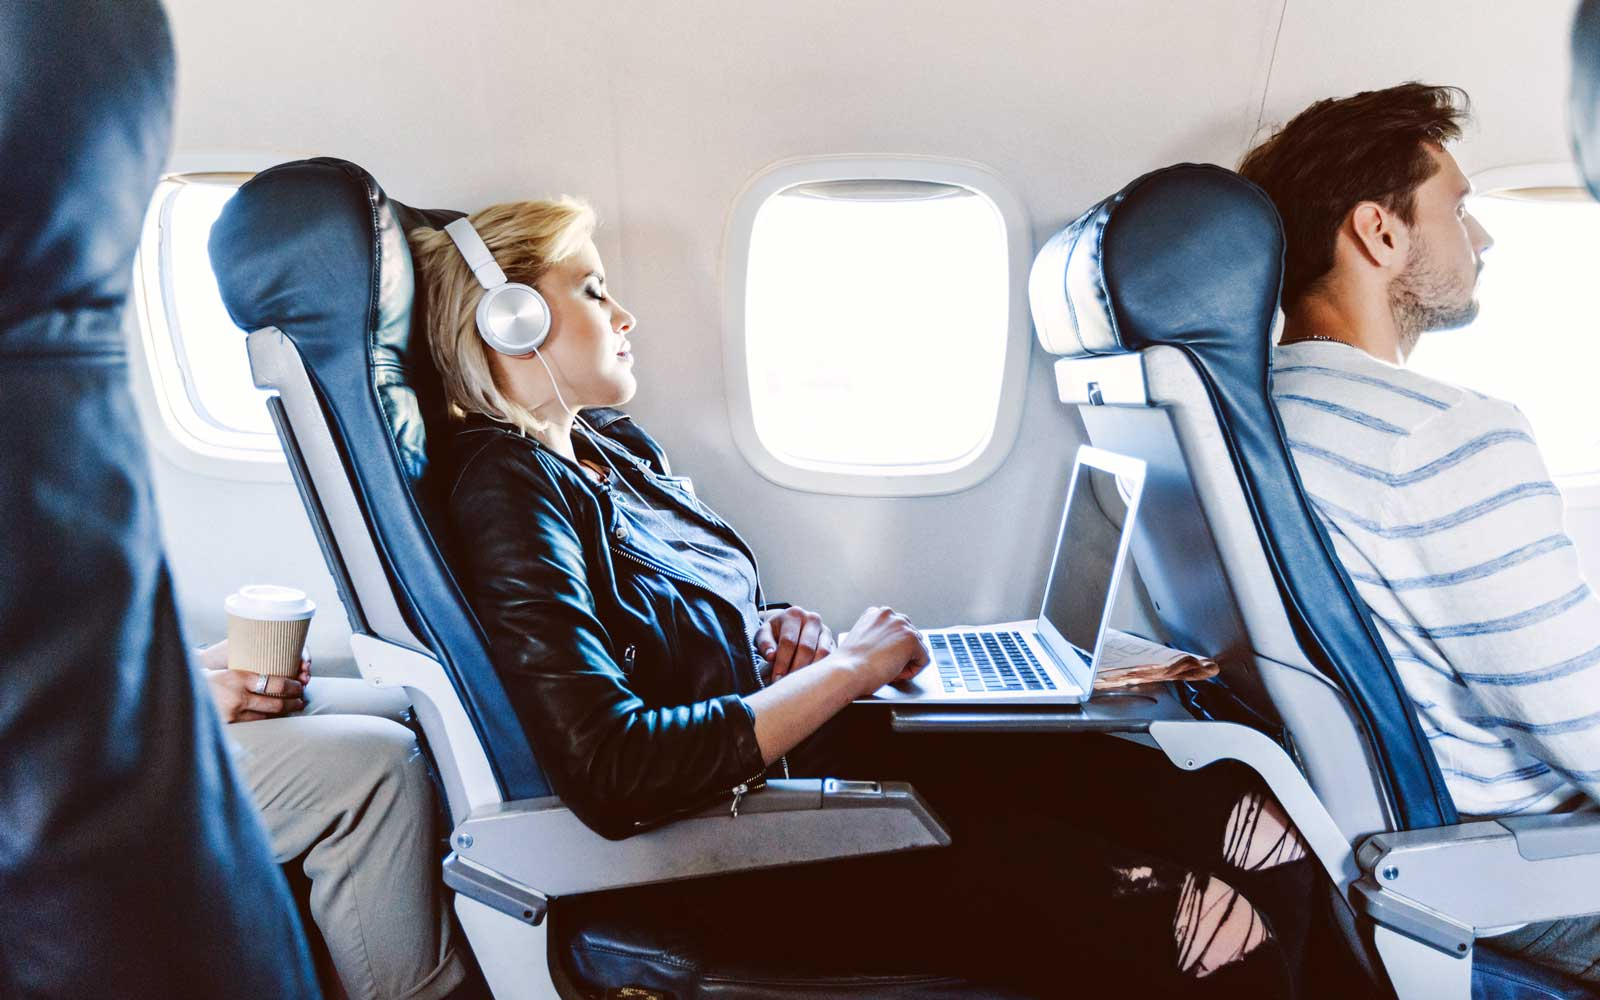 Female passenger using laptop during flight